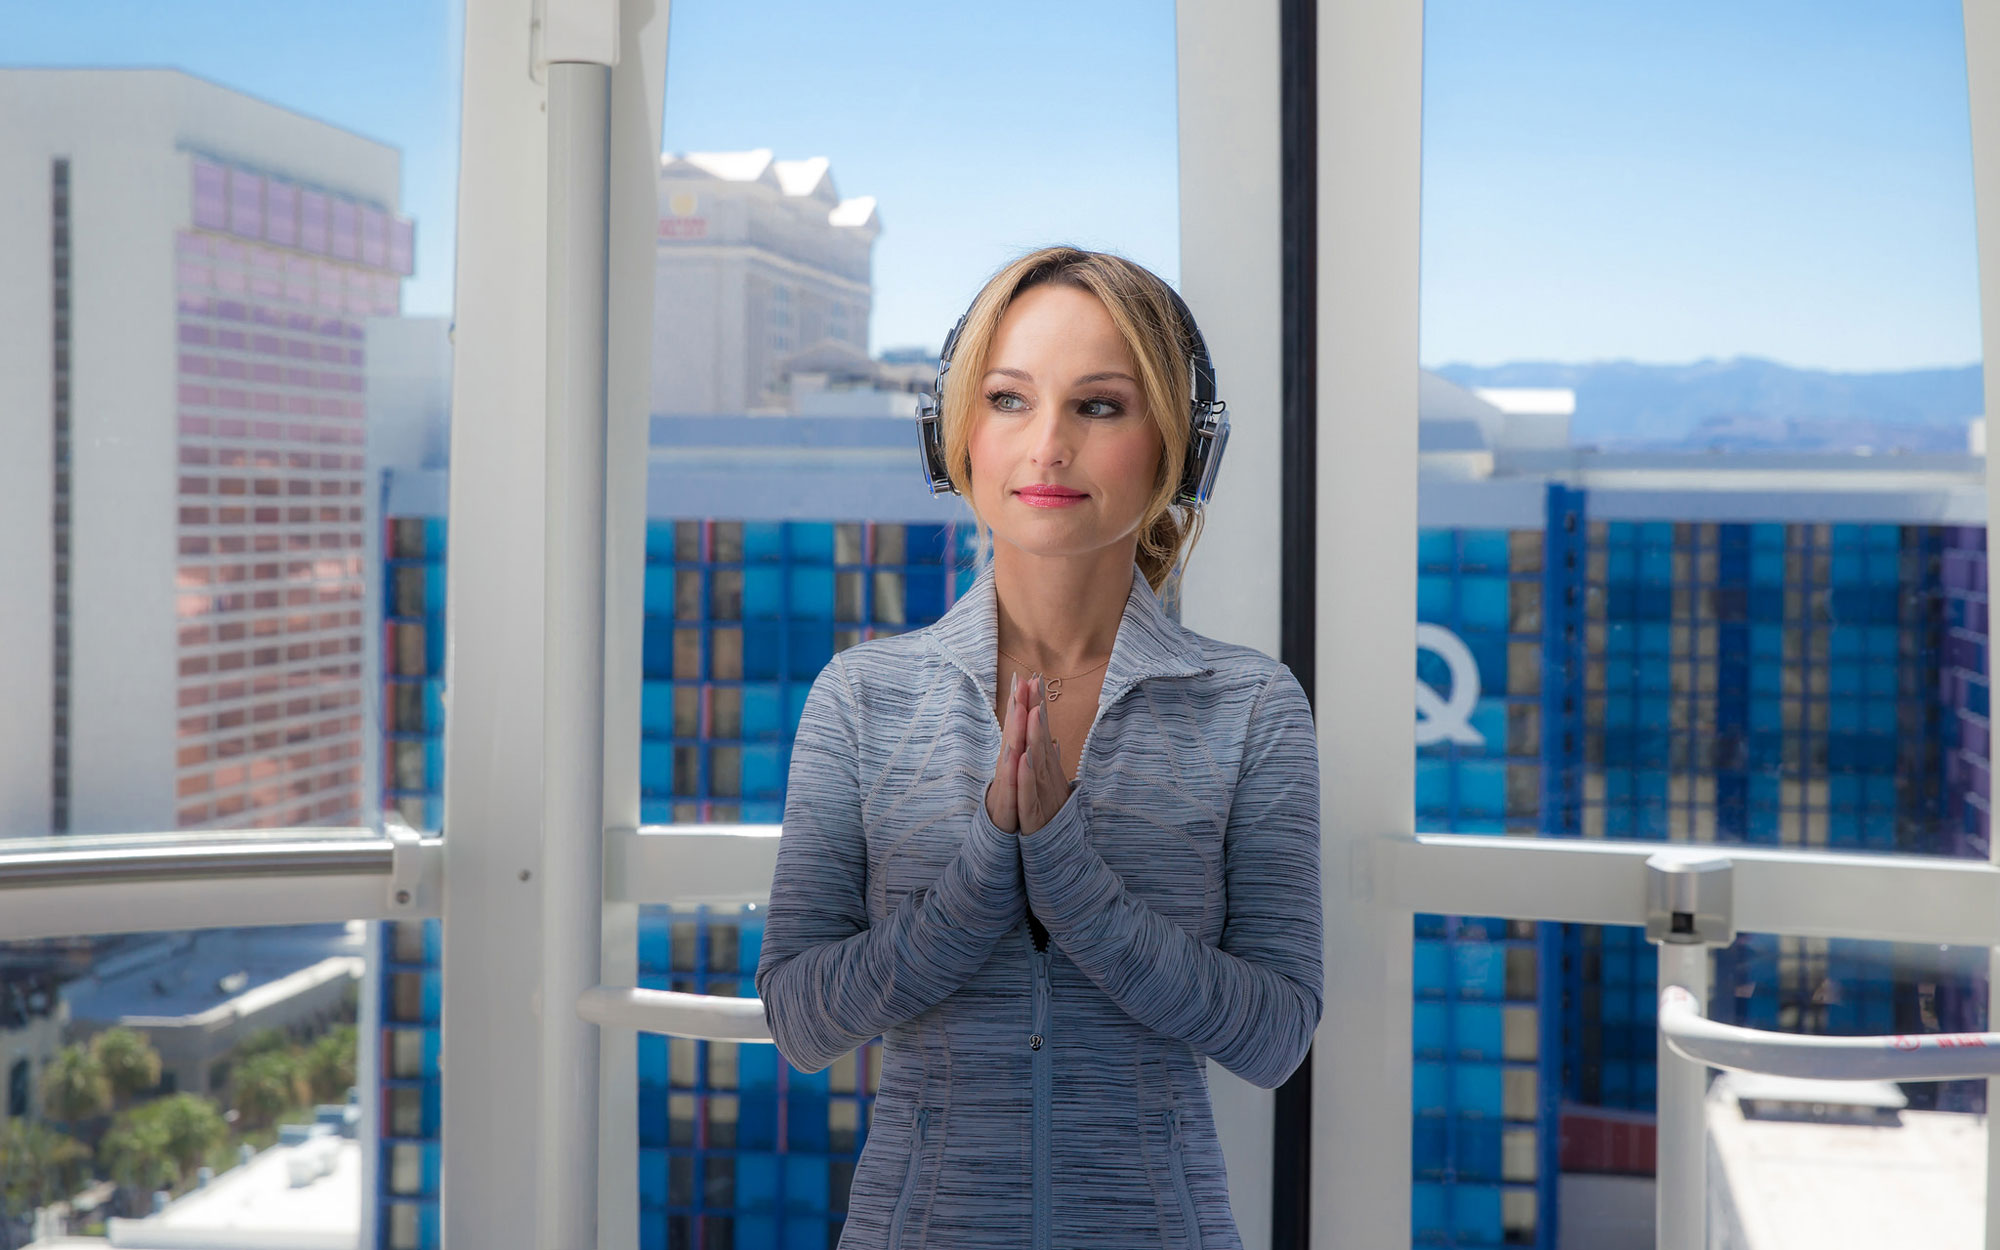 Giada De Laurentis Does Yoga on Las Vegas' High Roller Observation Wheel